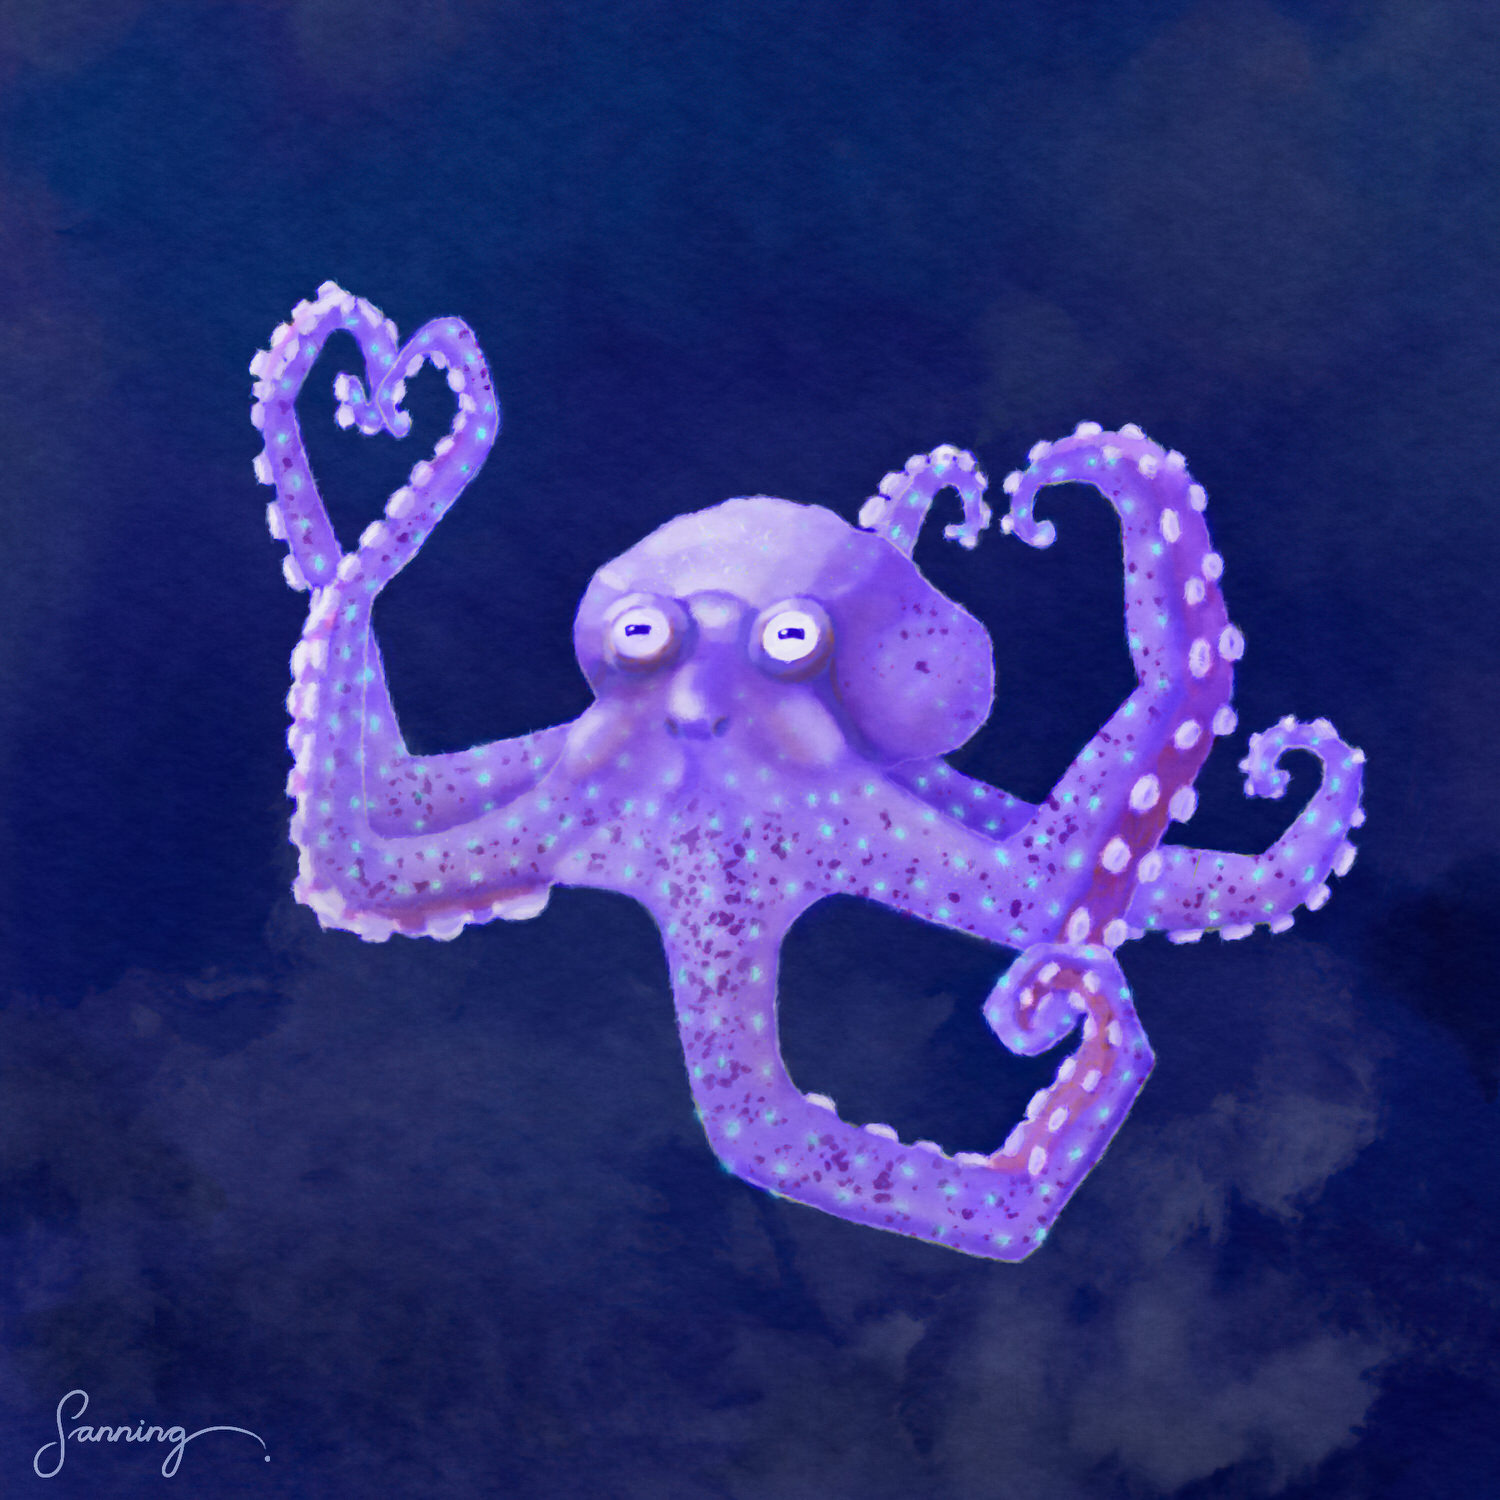 The Jolly Octopus